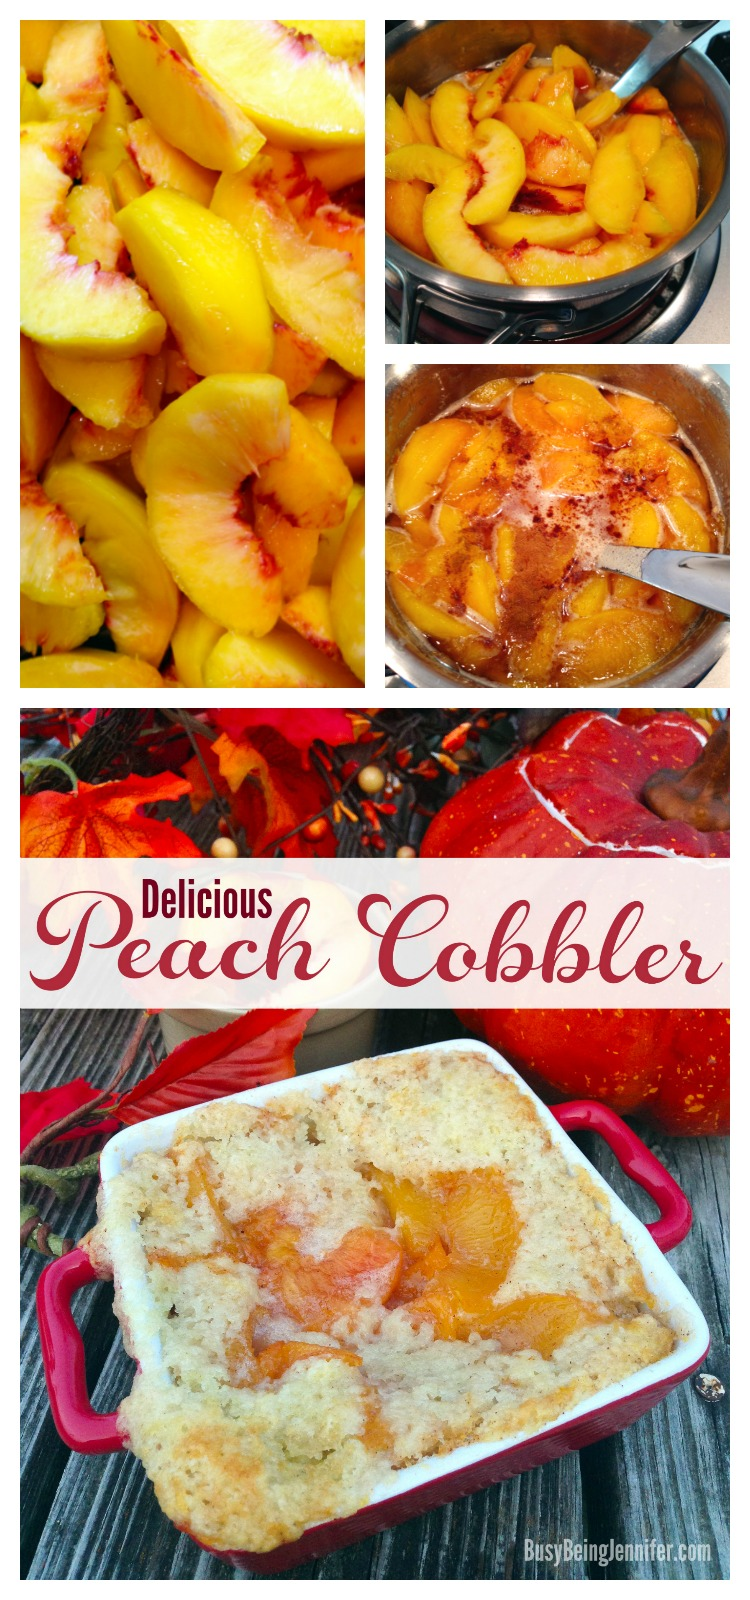 Fall Favorite! Delicious Peach Cobbler that the whole Family will love! I've got to try this recipe from BusyBeingJennifer.com